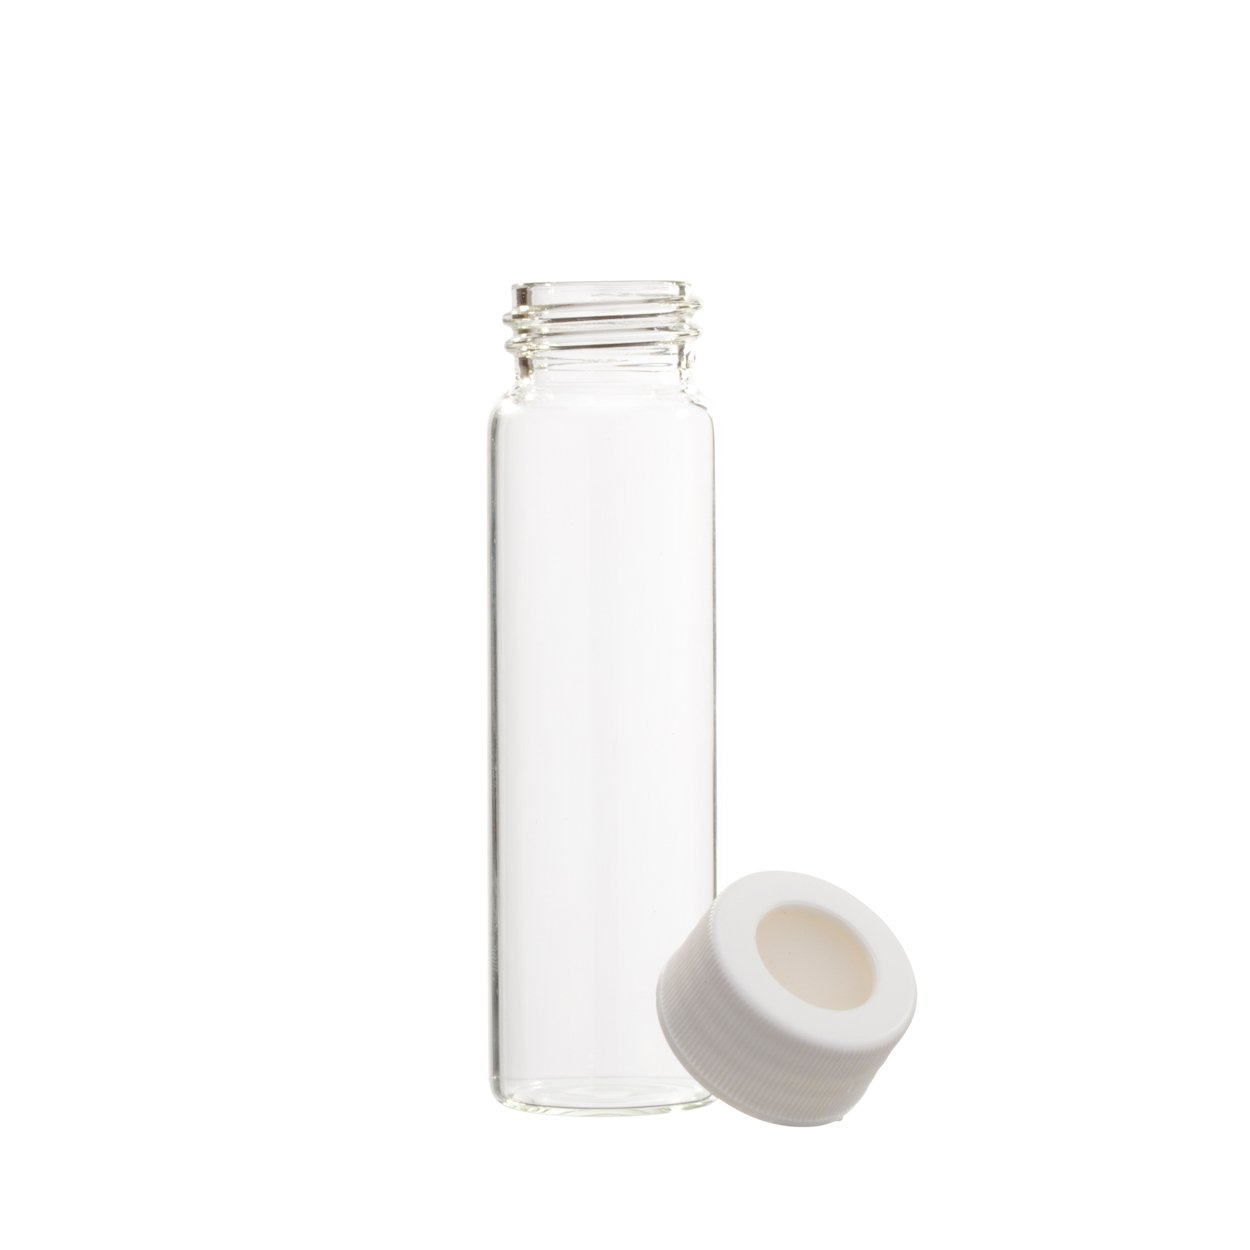 Greenwood Products 03-40BTS723 40mL Clear VOA Vial Assembled w/Open Top Bonded T/S Septa {HEAVY} Cap, Certified (72/cs)